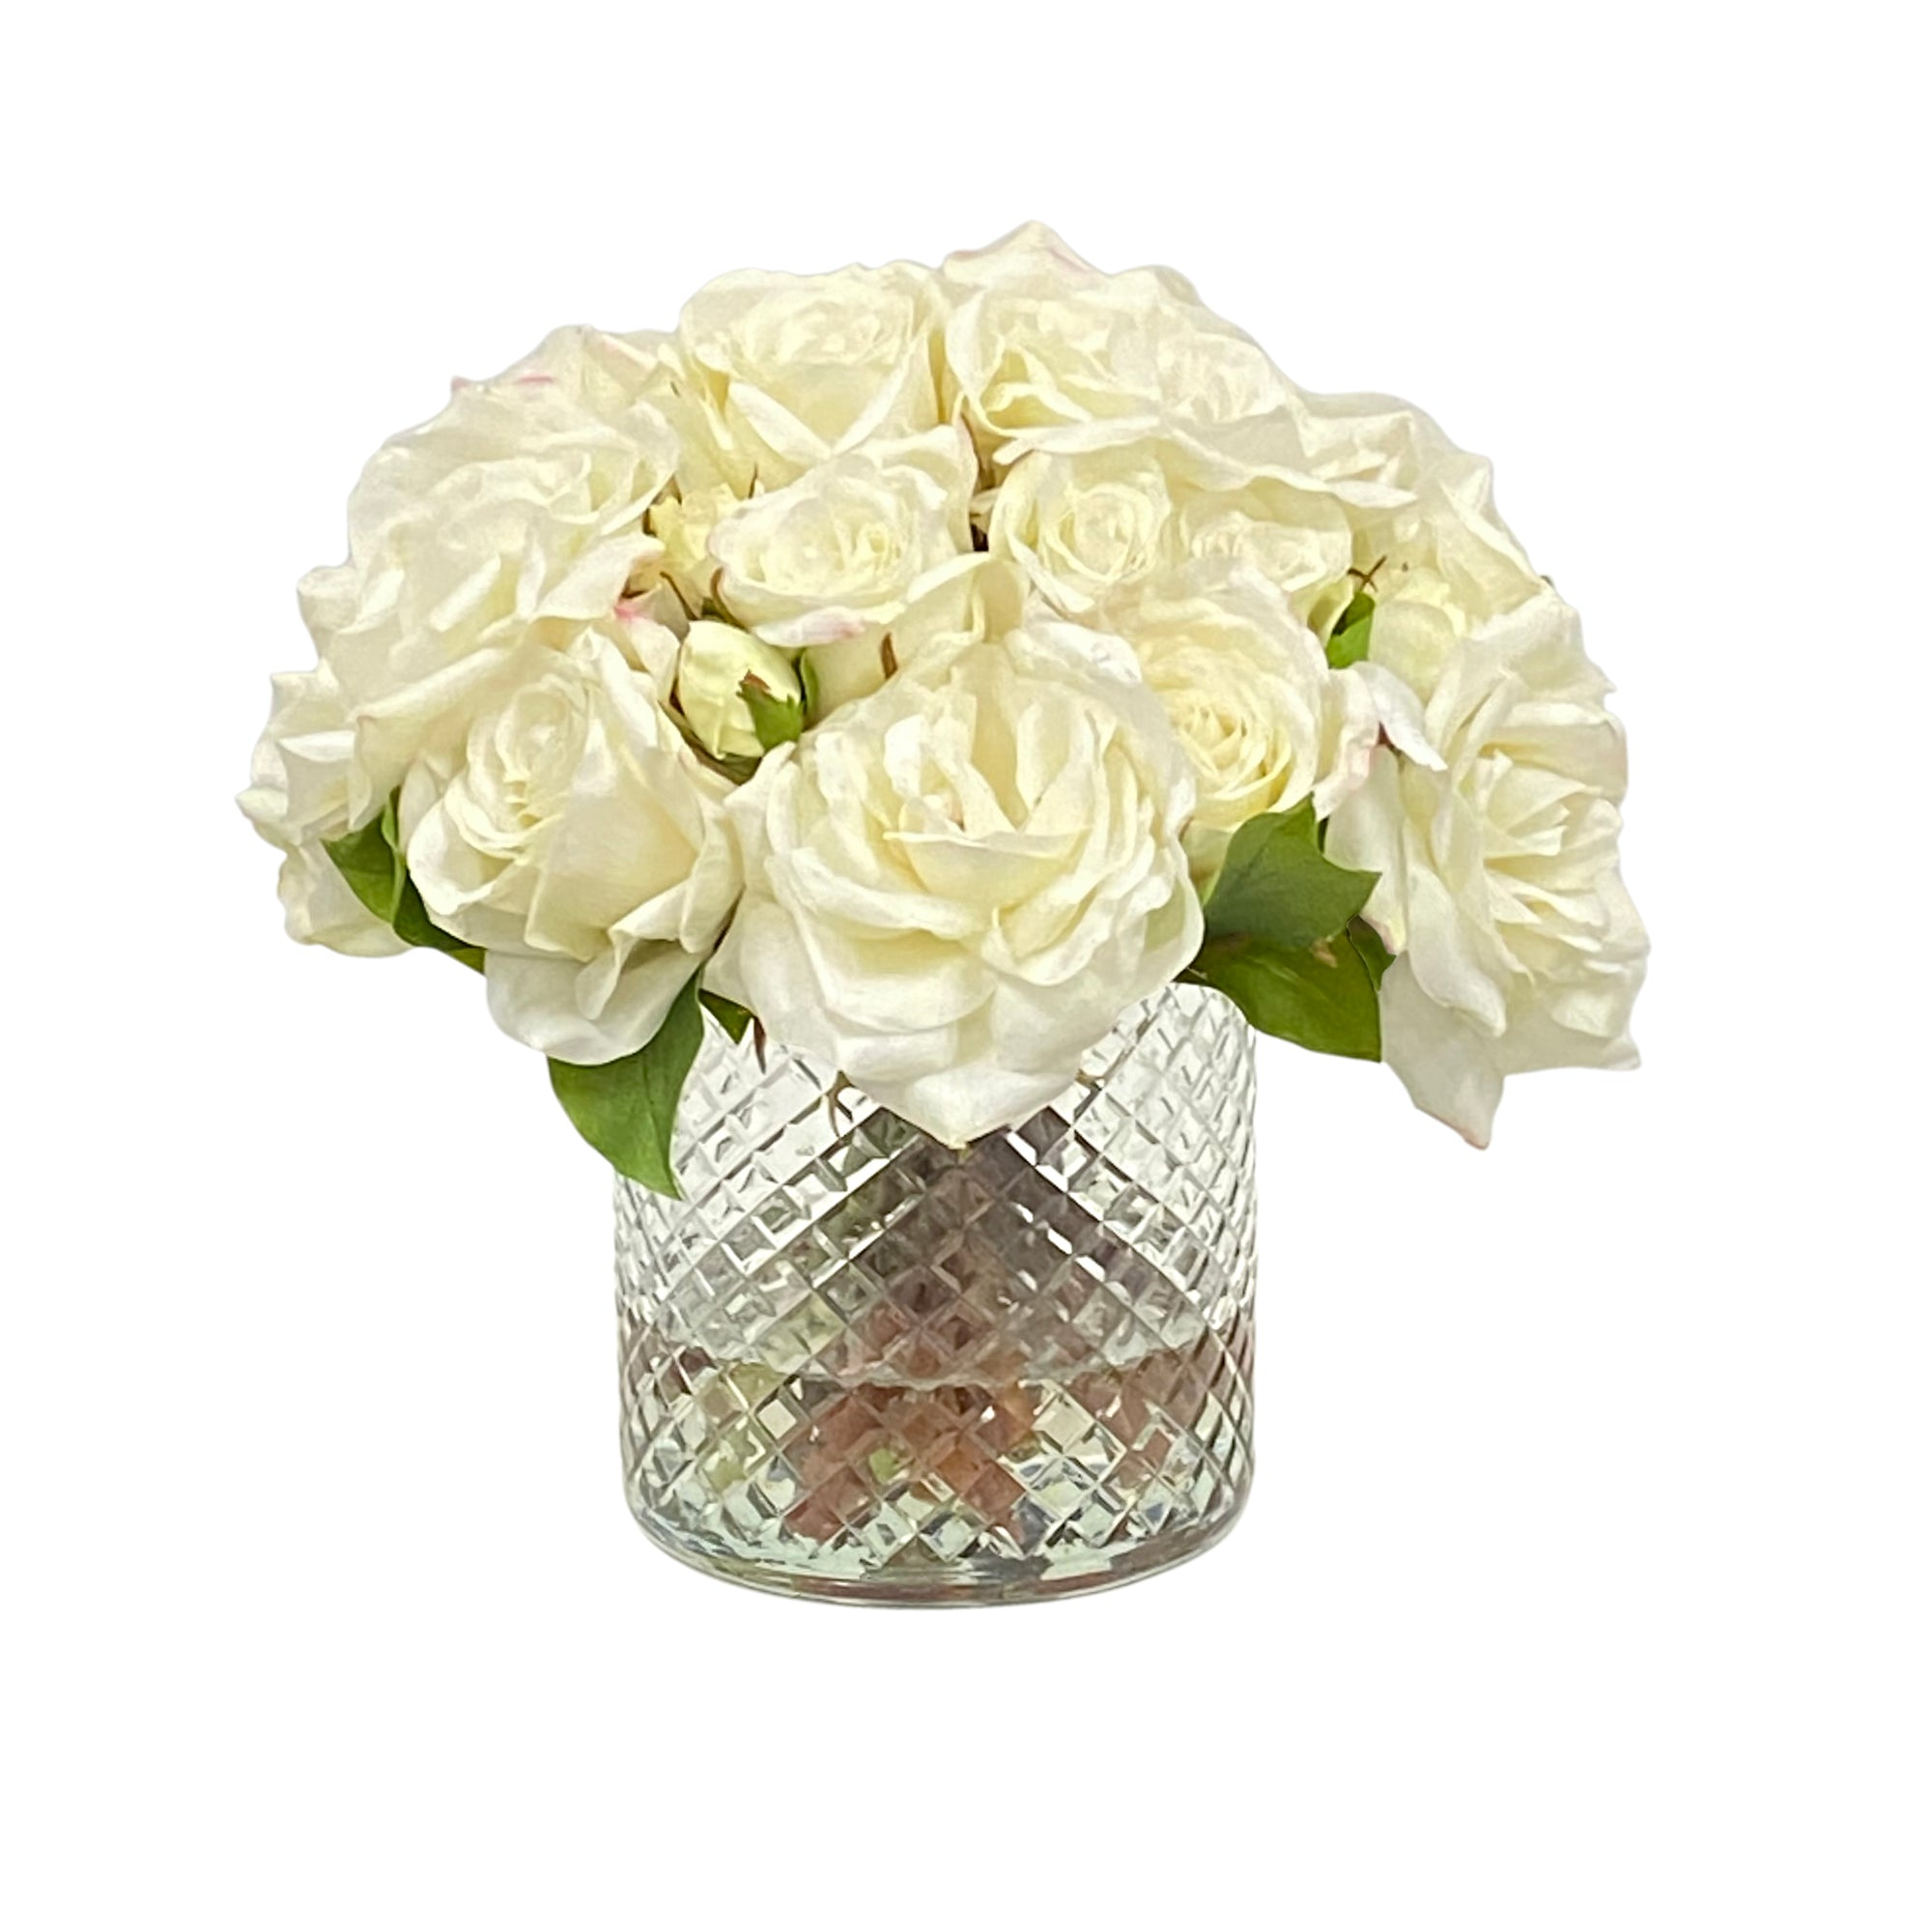 White roses in diamond cut glass vase